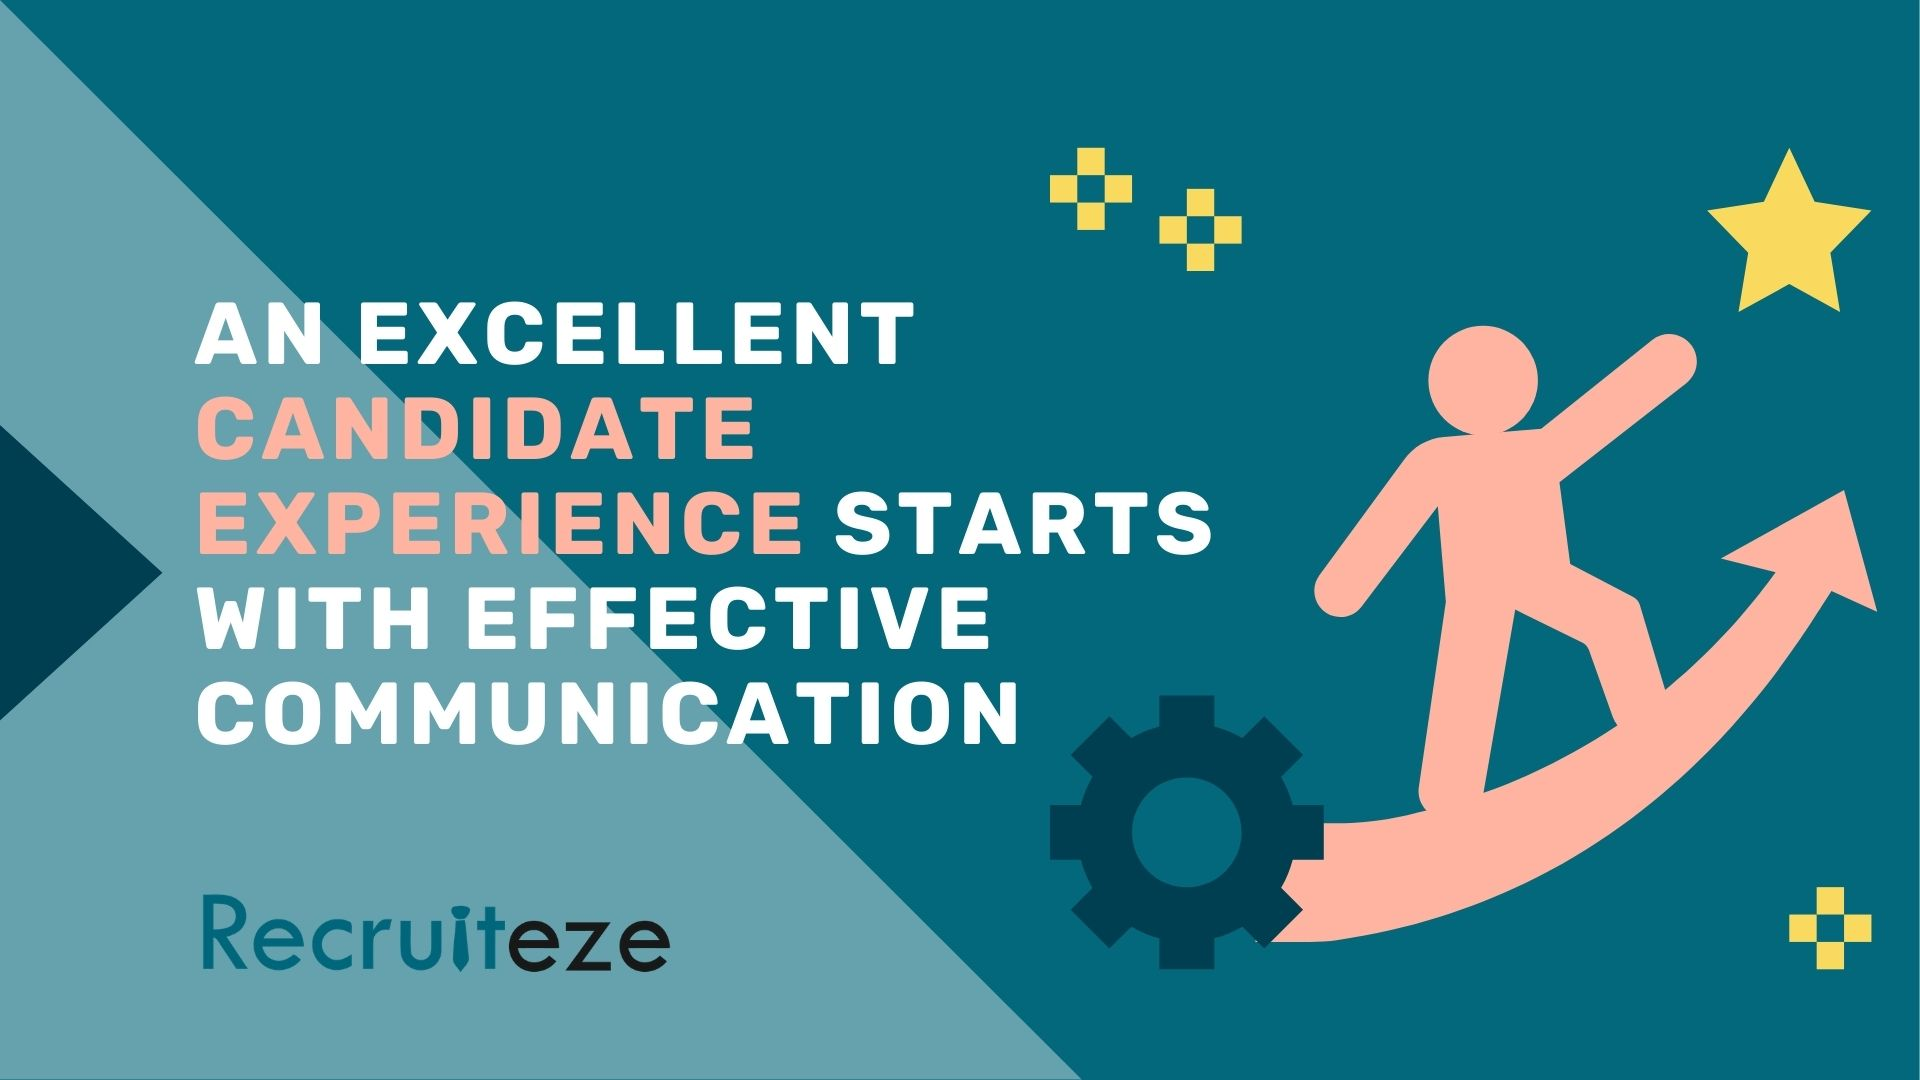 An excellent candidate experience starts with effective communication